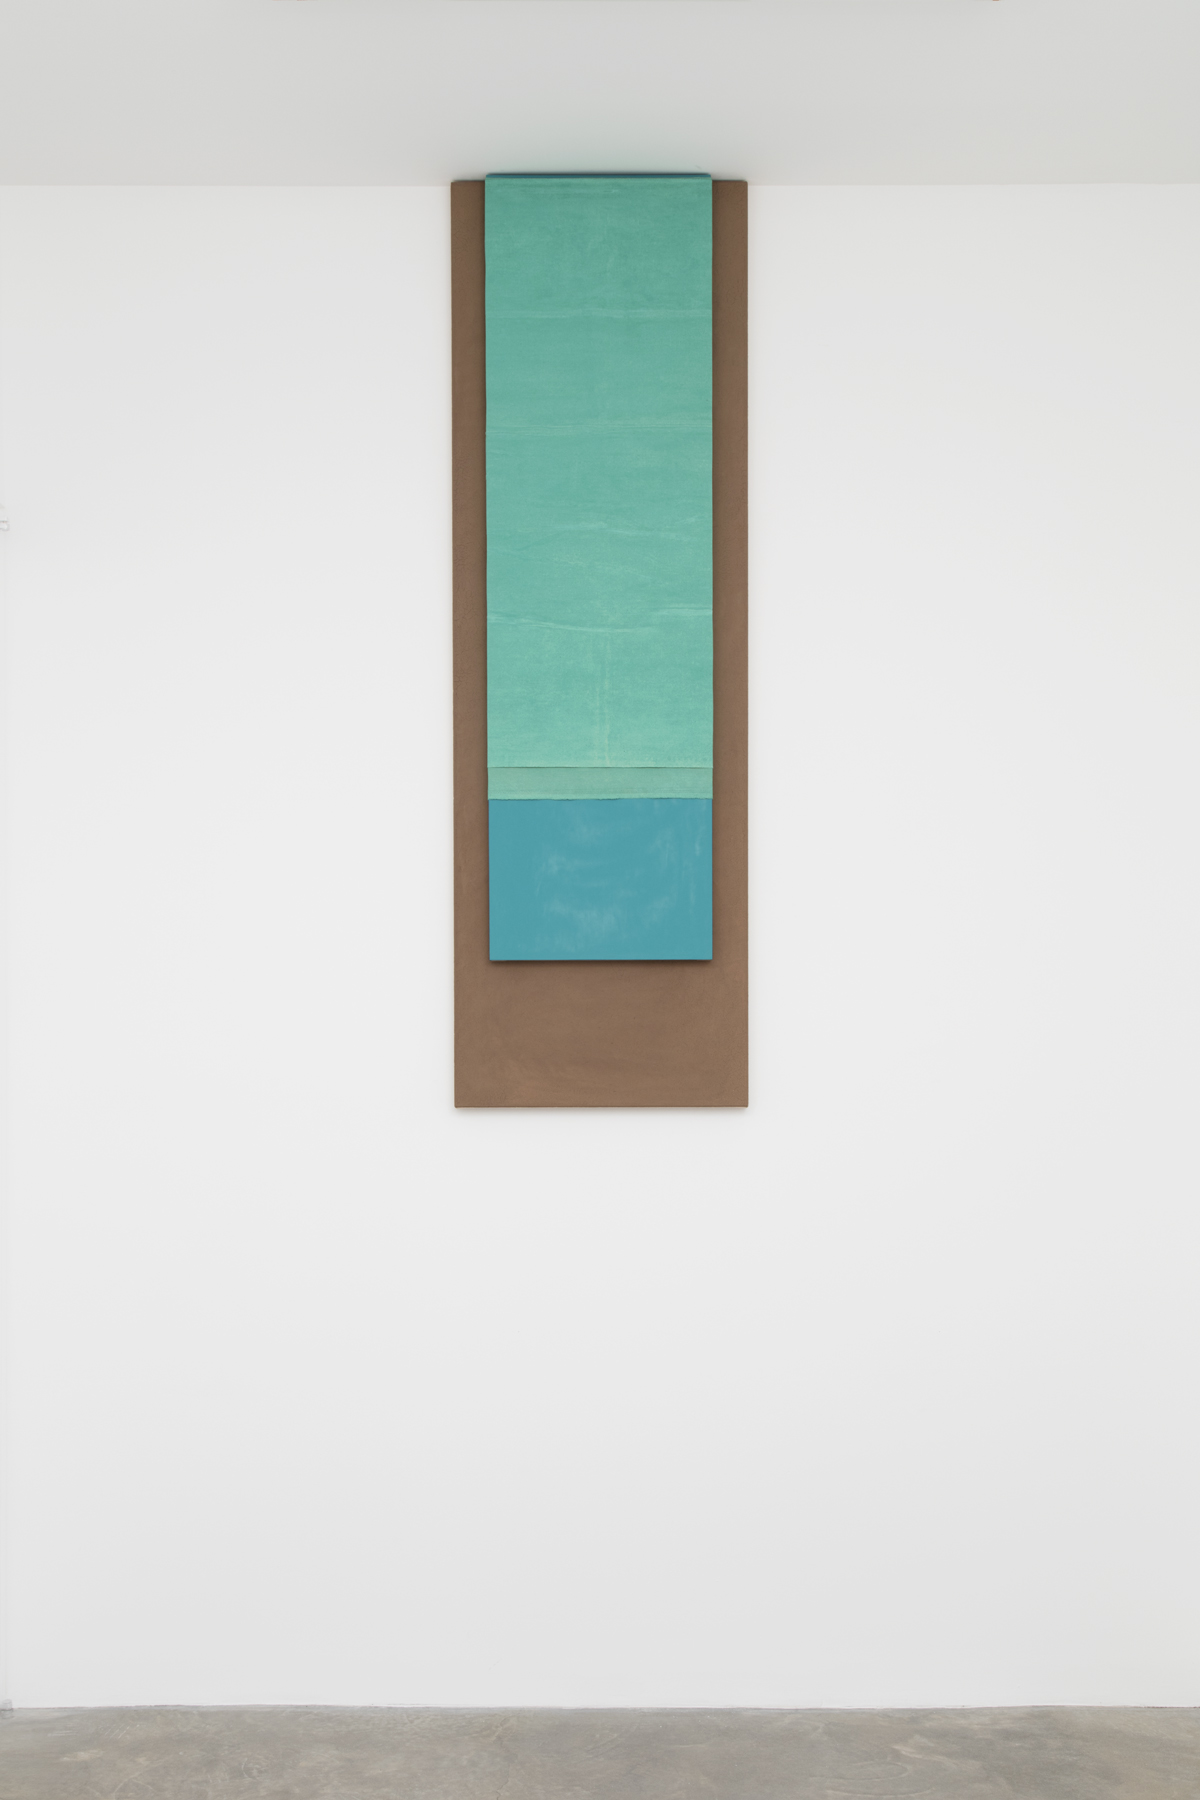 Dash Untitled, 2017; adobe, oil, pigment, acrylic, linen, jute, wood support; photo Jean Vong; Courtesy the artist, Casey Kaplan Gallery, New York, and Mehdi Chouakri, Berlin